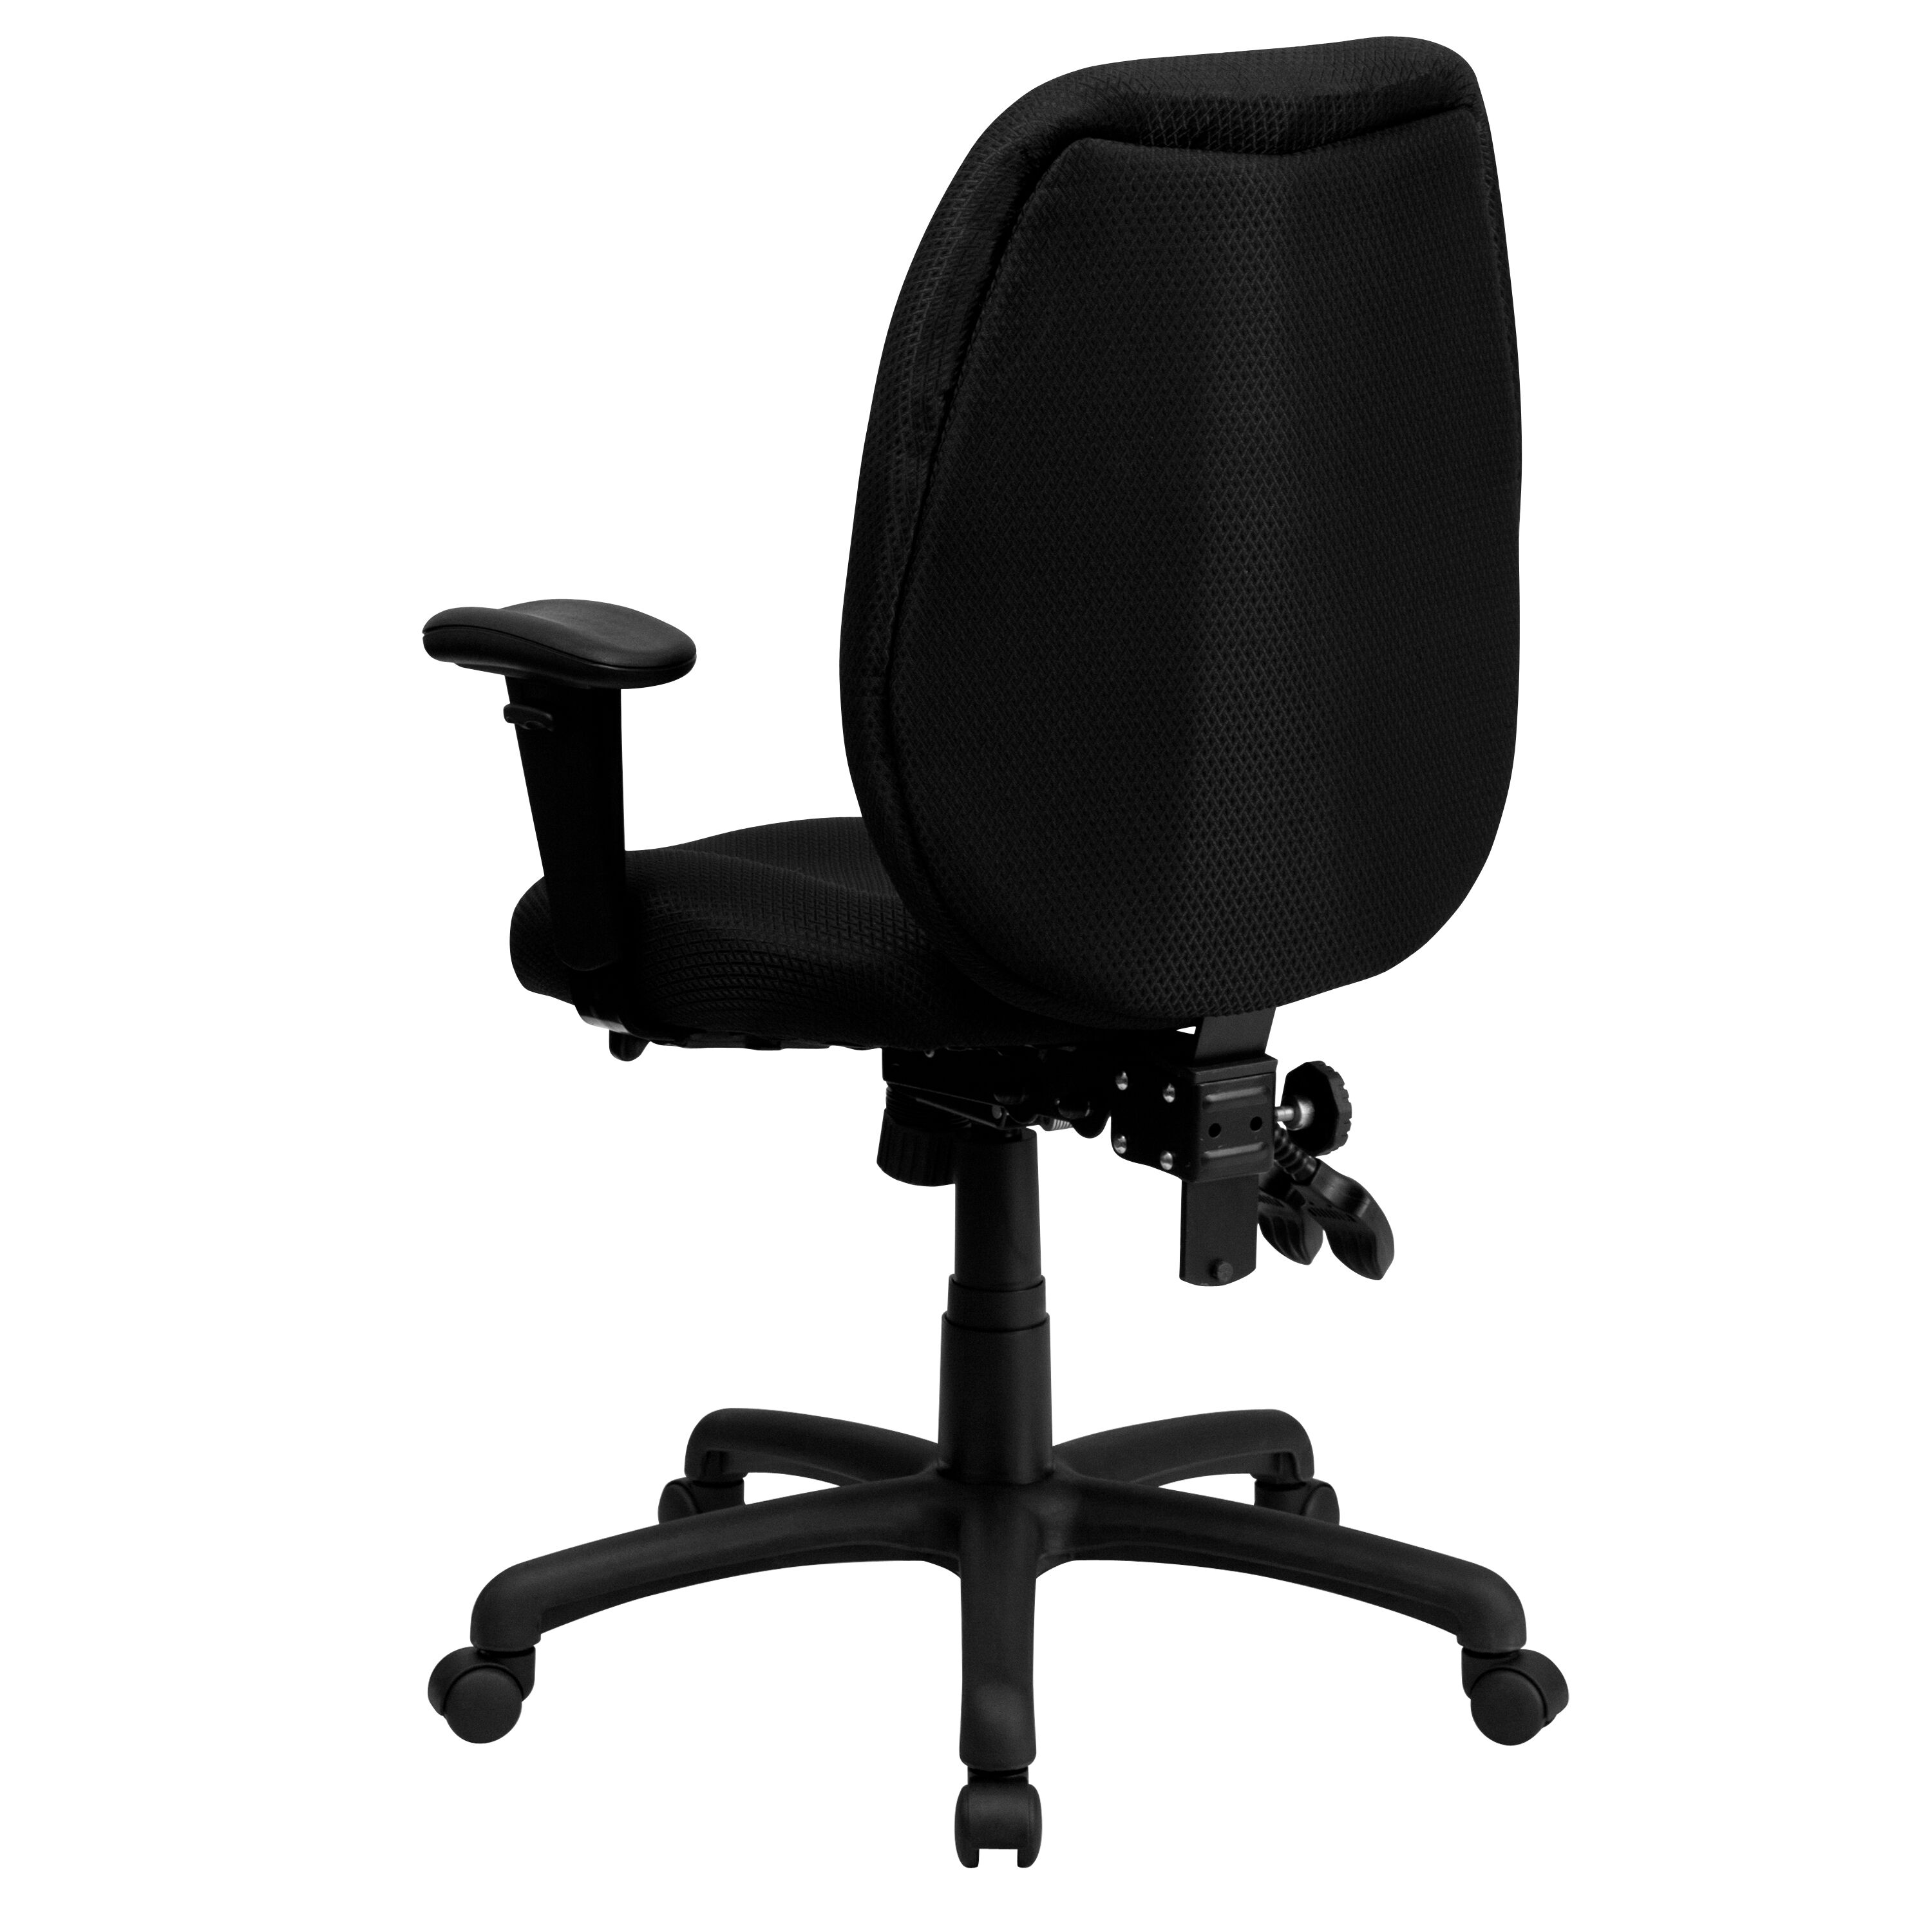 ... Our High Back Black Fabric Multifunction Ergonomic Executive Swivel  Chair With Adjustable Arms Is On Sale ...